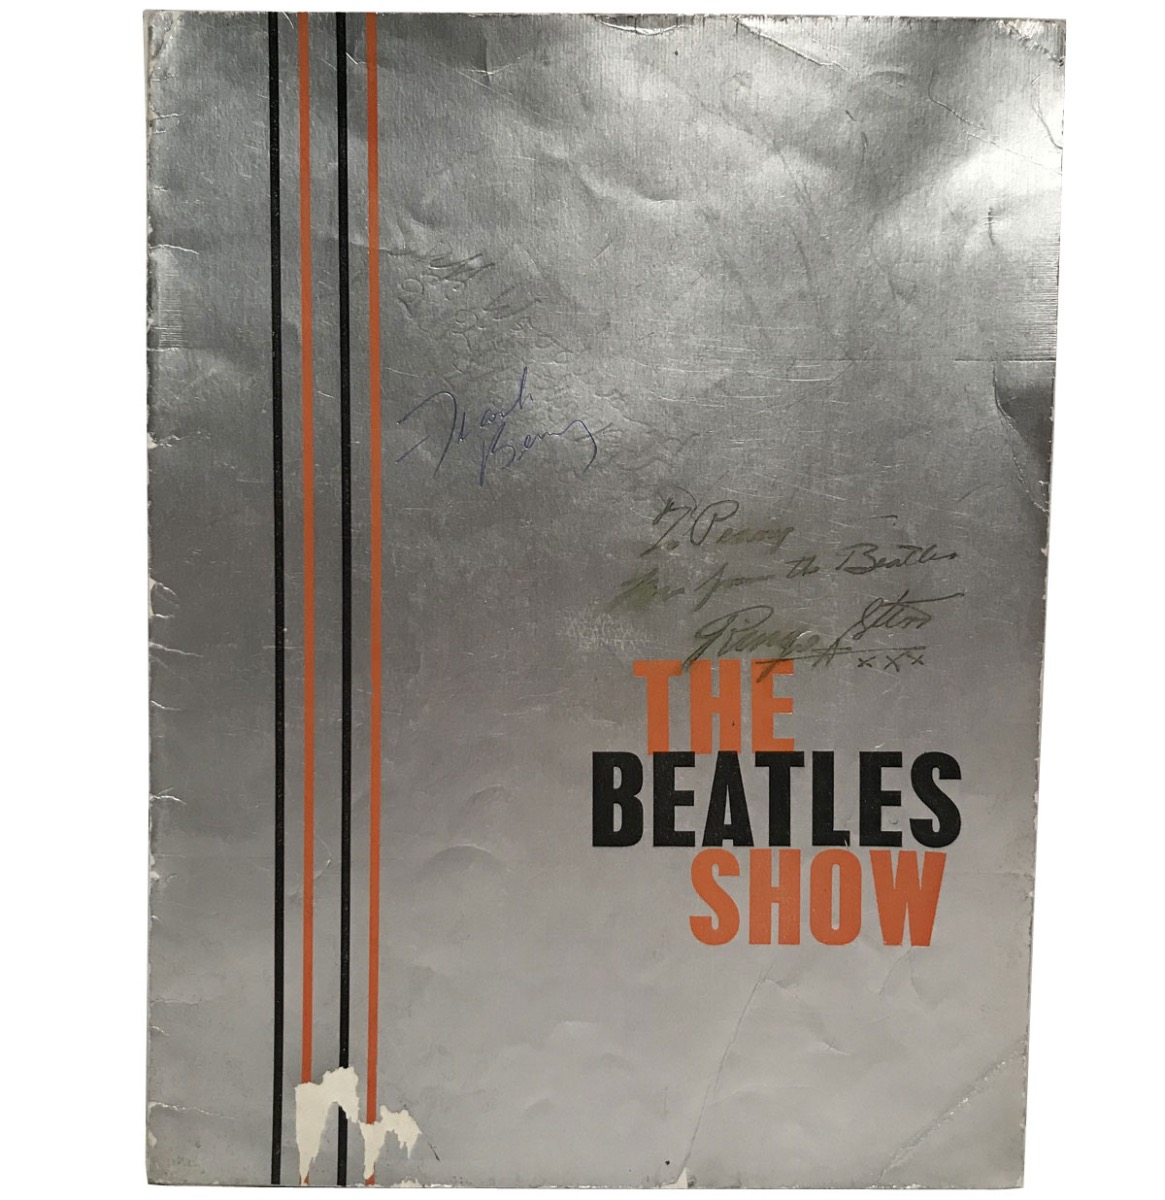 The Beatles Show 1963 Programma Boekje Gesigneerd Door Ringo Starr, Frank Berry En Peter Jay